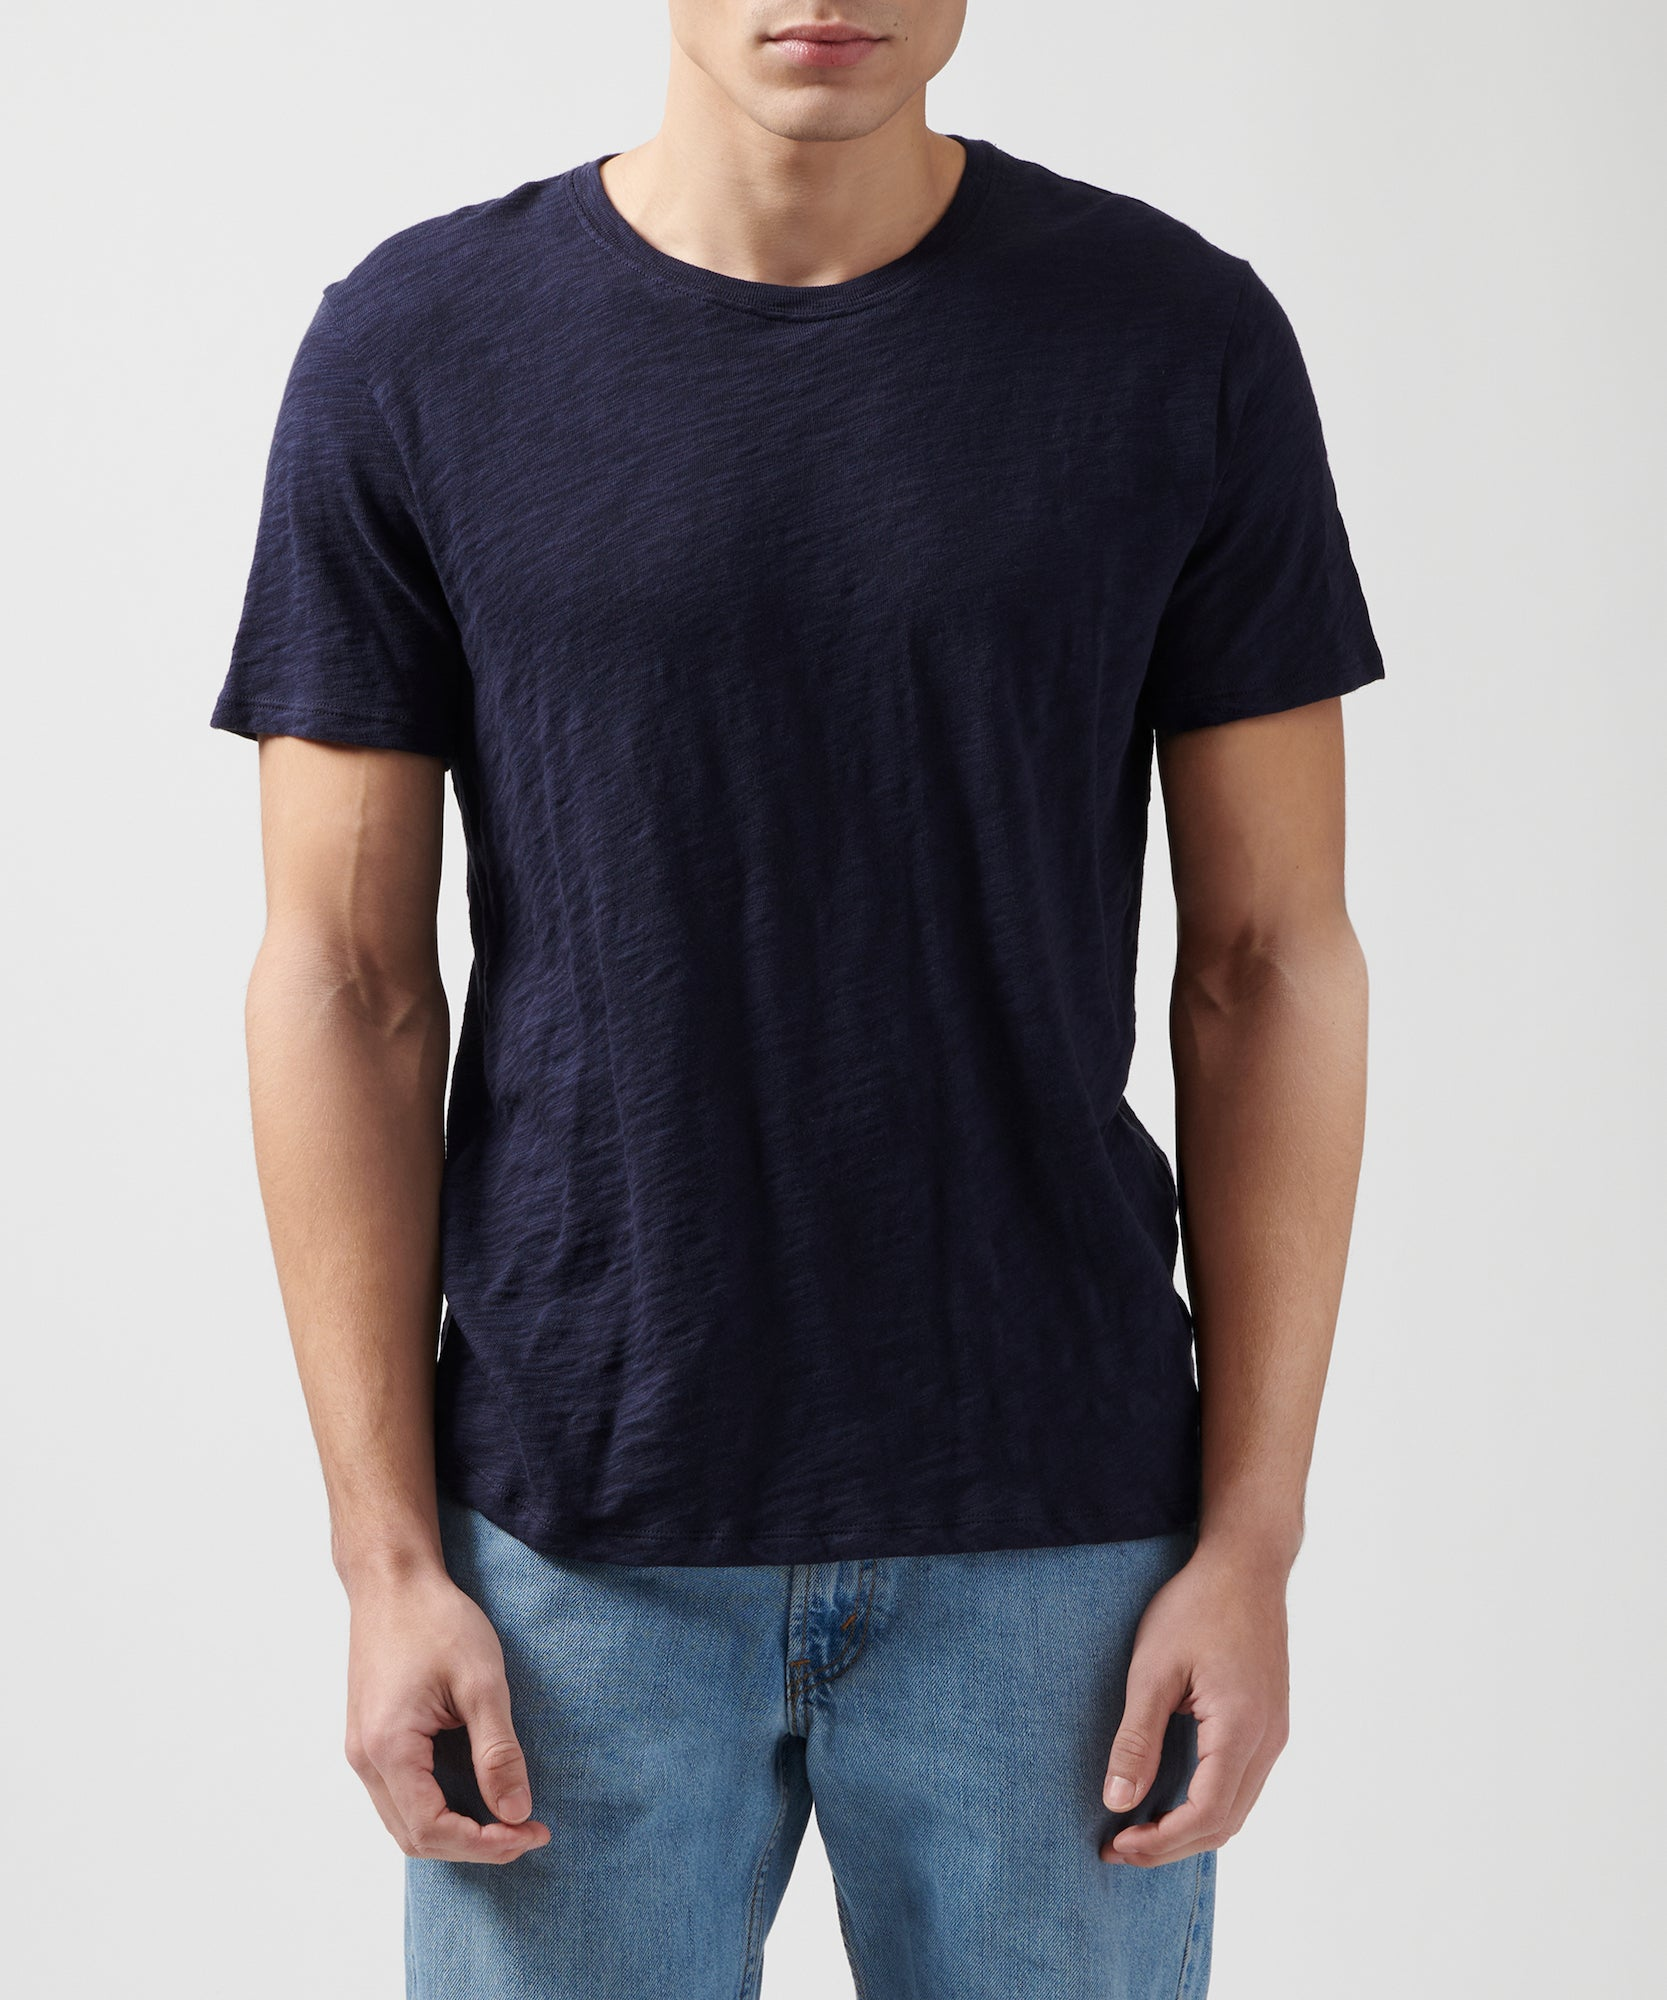 Midnight Slub Jersey Crew Neck Tee - Men's Cotton Short Sleeve Tee by ATM Anthony Thomas Melillo